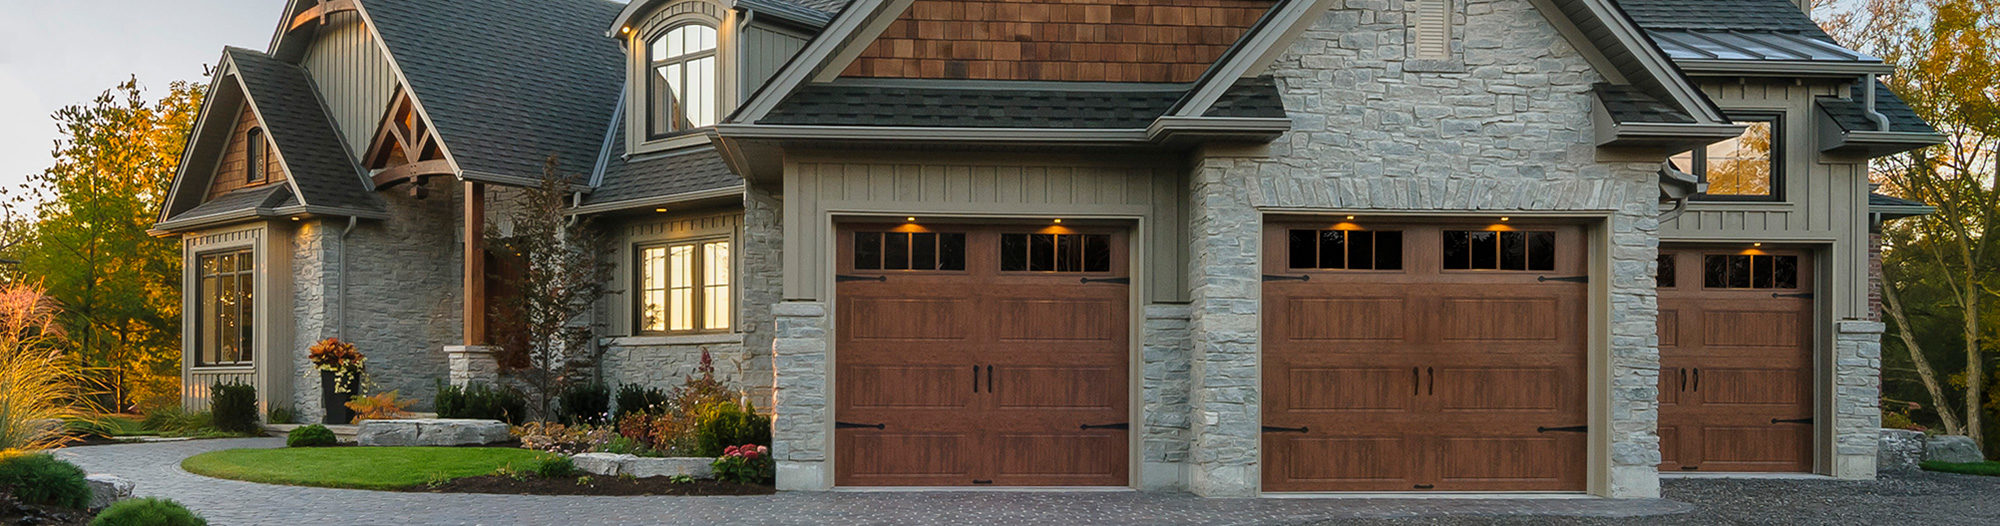 Your Garage Door Parts & Service Experts